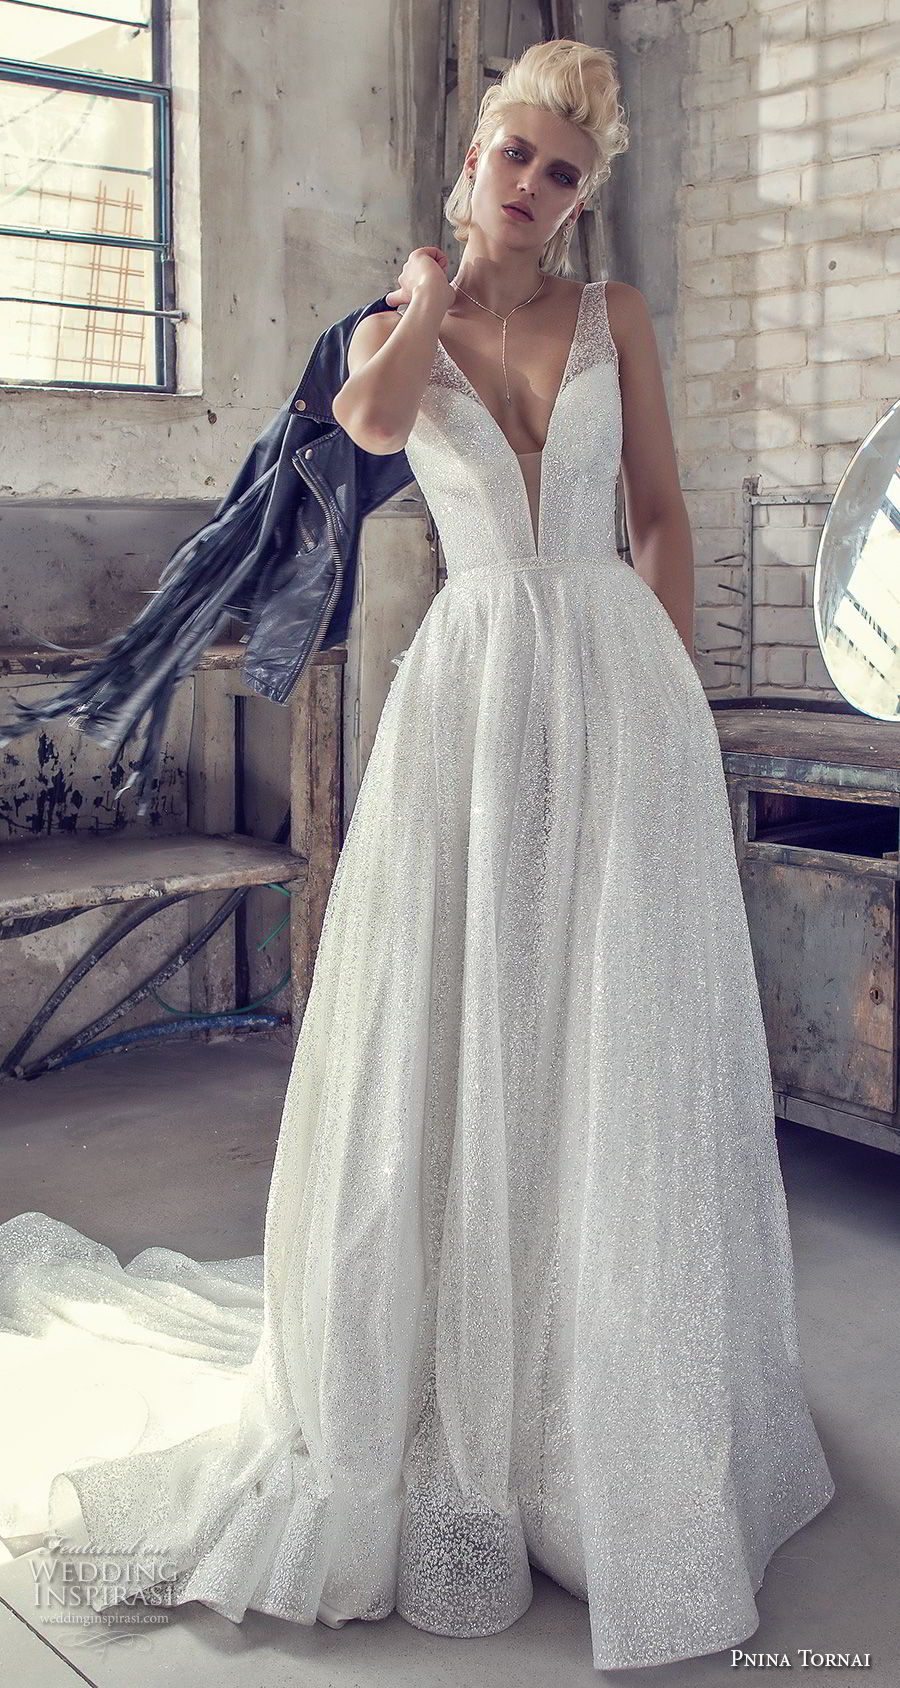 pnina tornai 2019 love bridal sleeveless deep plunging v neck light embellishment glitzy glitter romantic glamorous a line wedding dress with pockets open back chapel train (4) mv